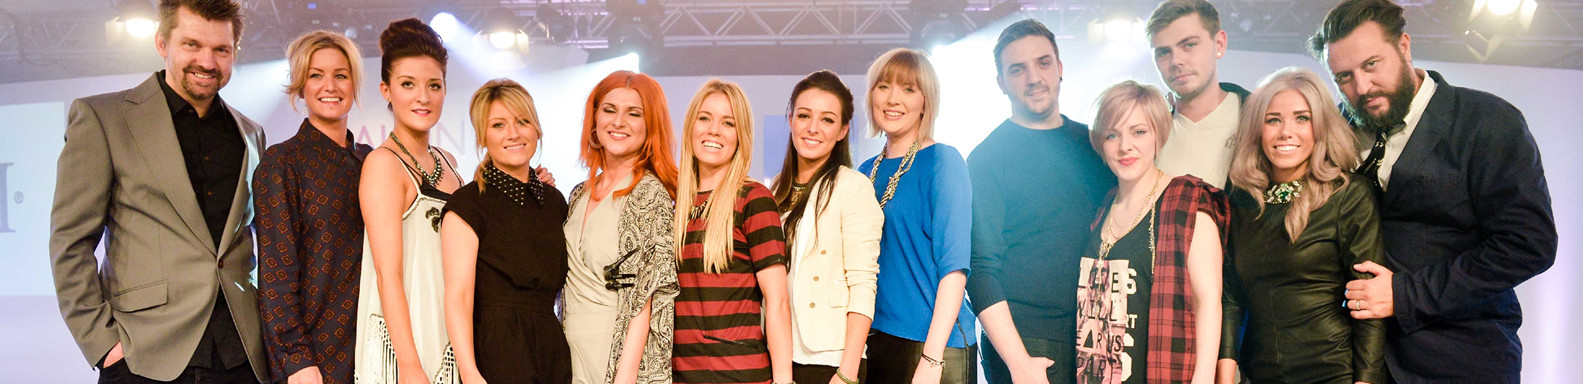 Yazz Stylists group shot with Hairdressing Celebs